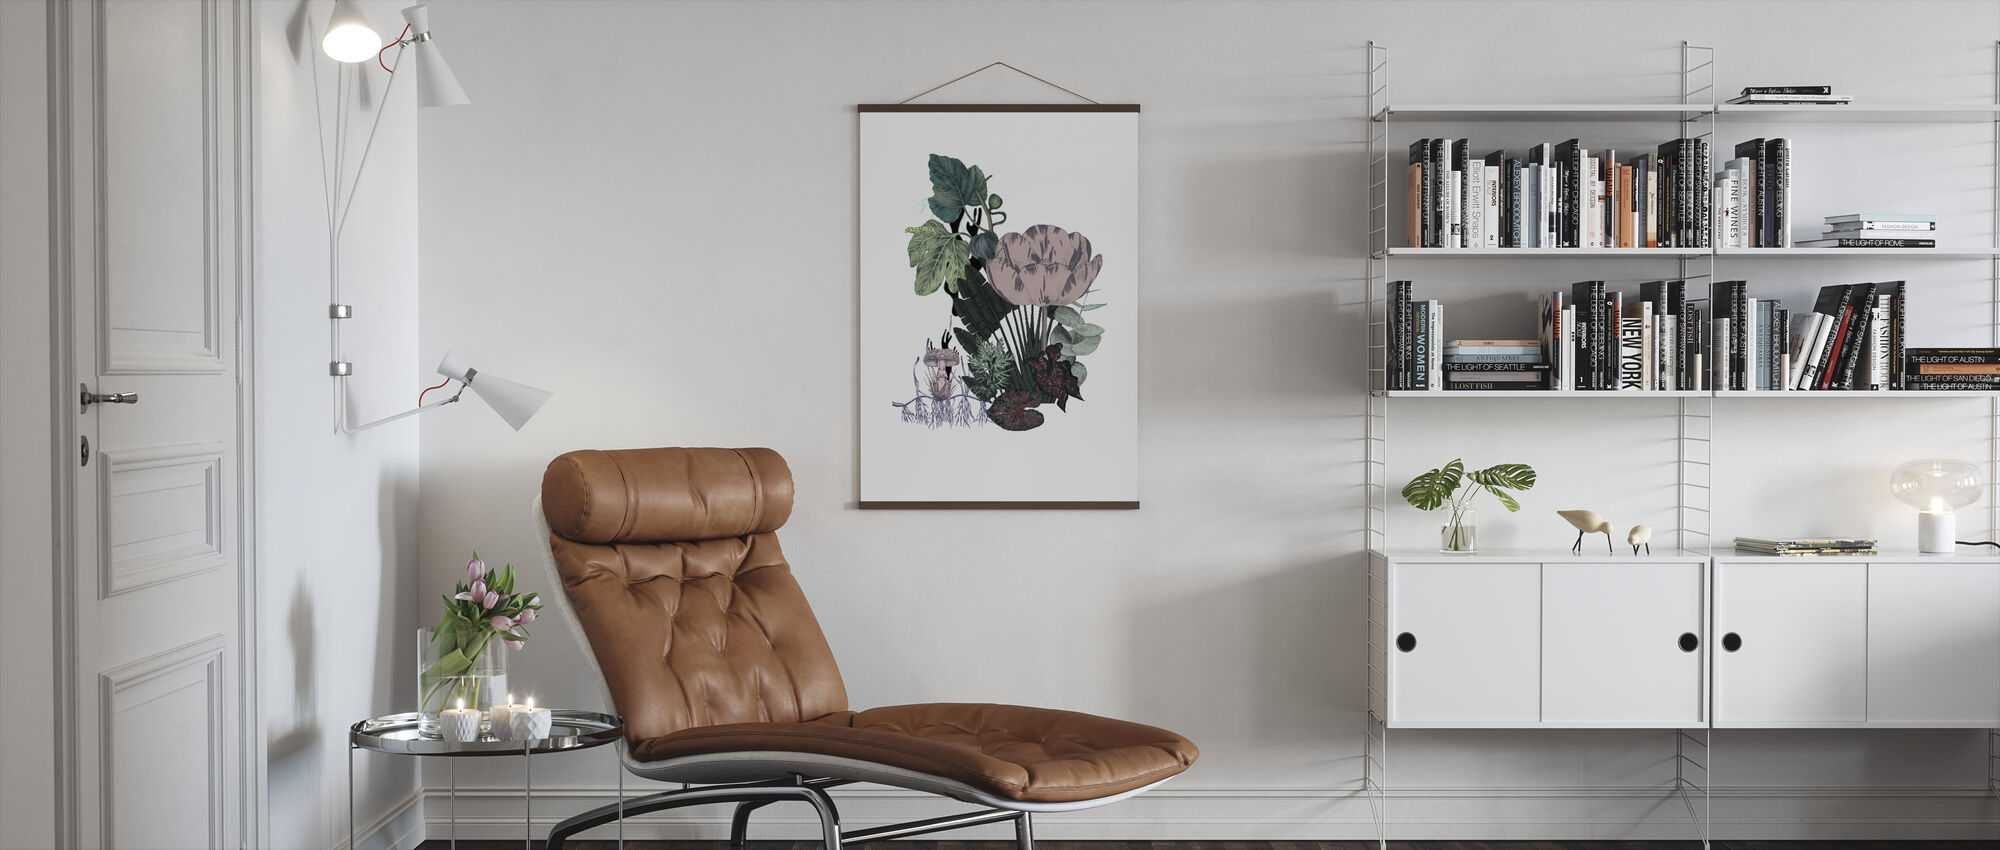 Figs Botanica - Poster - Living Room